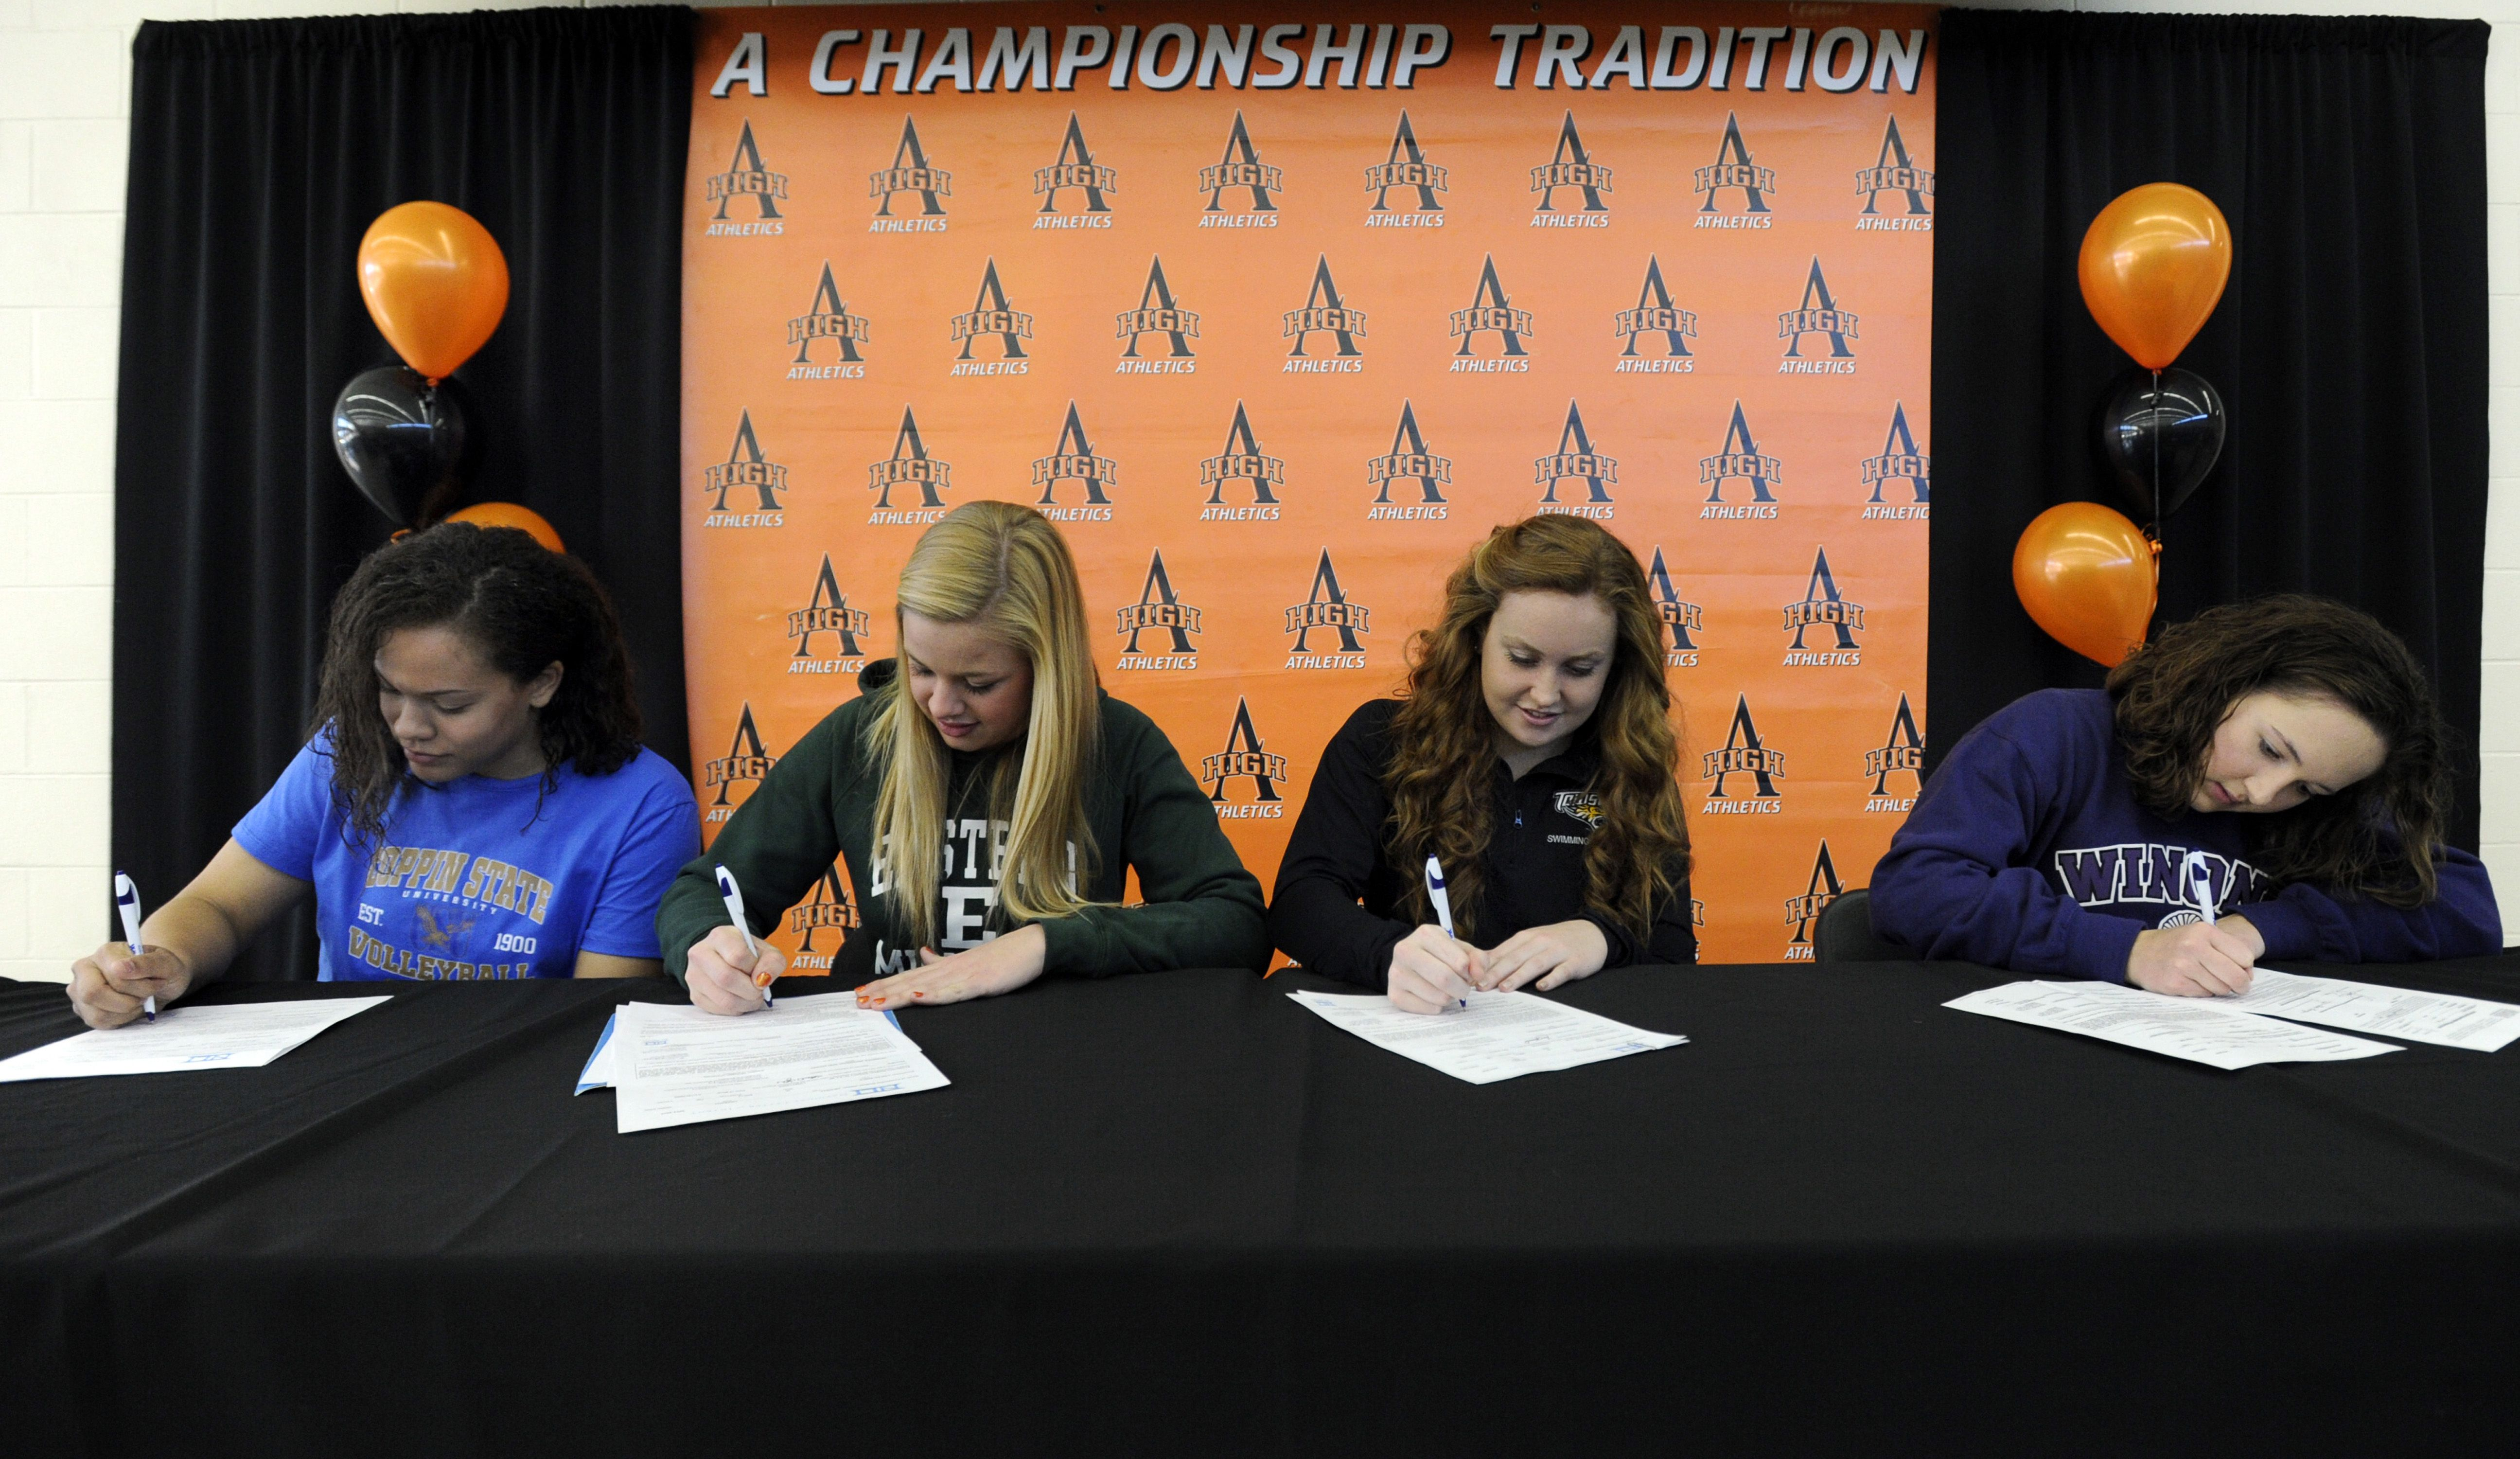 Ames High S Balie Jackson For Volleyball At Coppin State Hannah Newell For Swimming At Eastern Michigan Sydney Sorenson Eastern Michigan Winona State Tribune